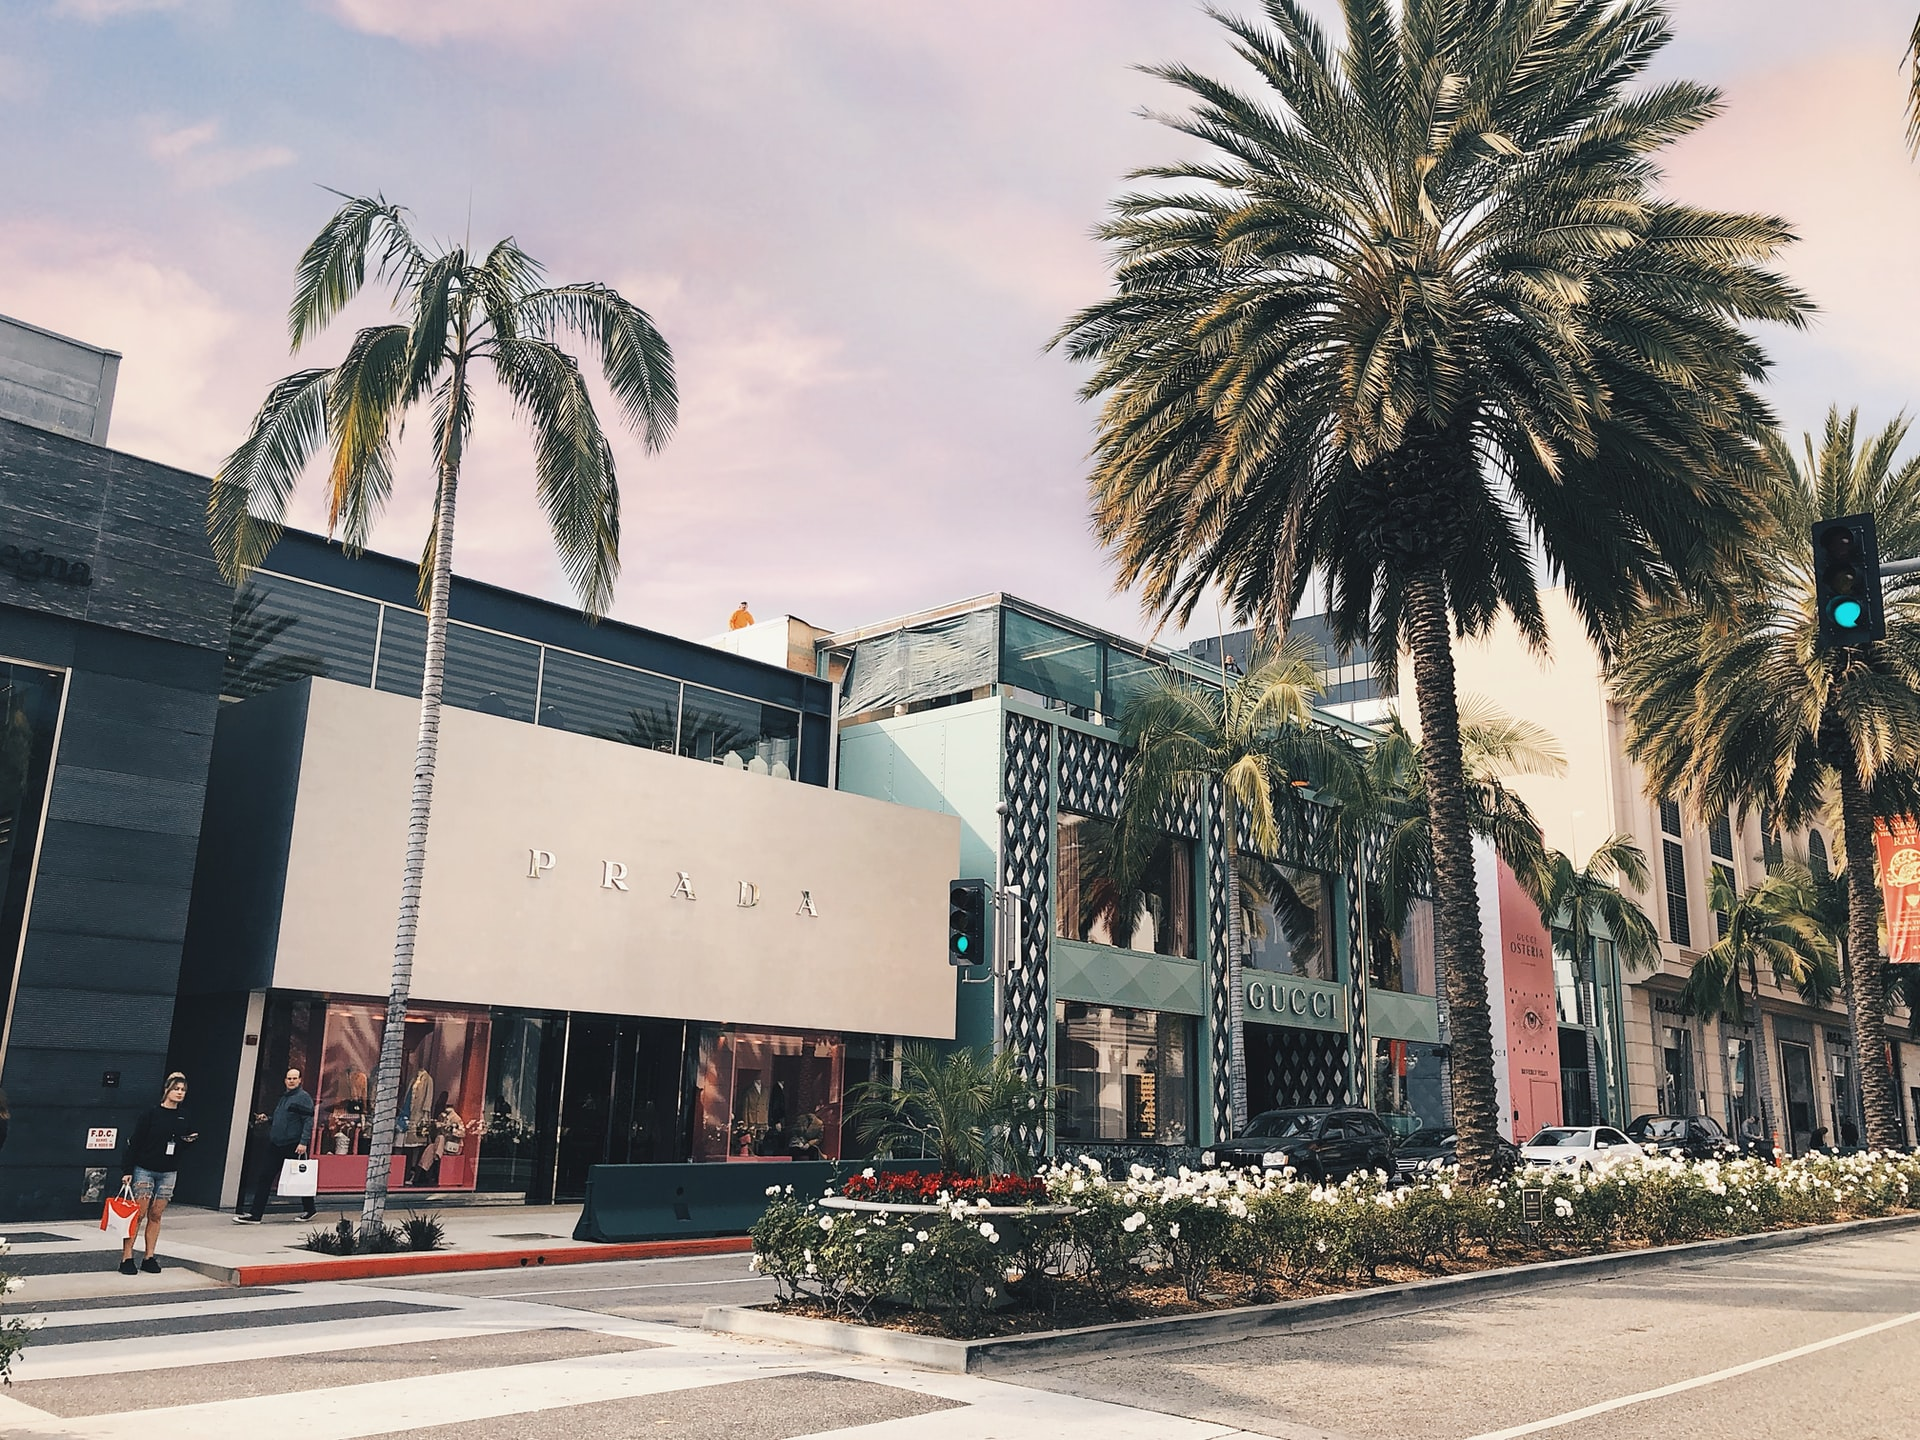 Rodeo Drive stores and trees in Los Angeles